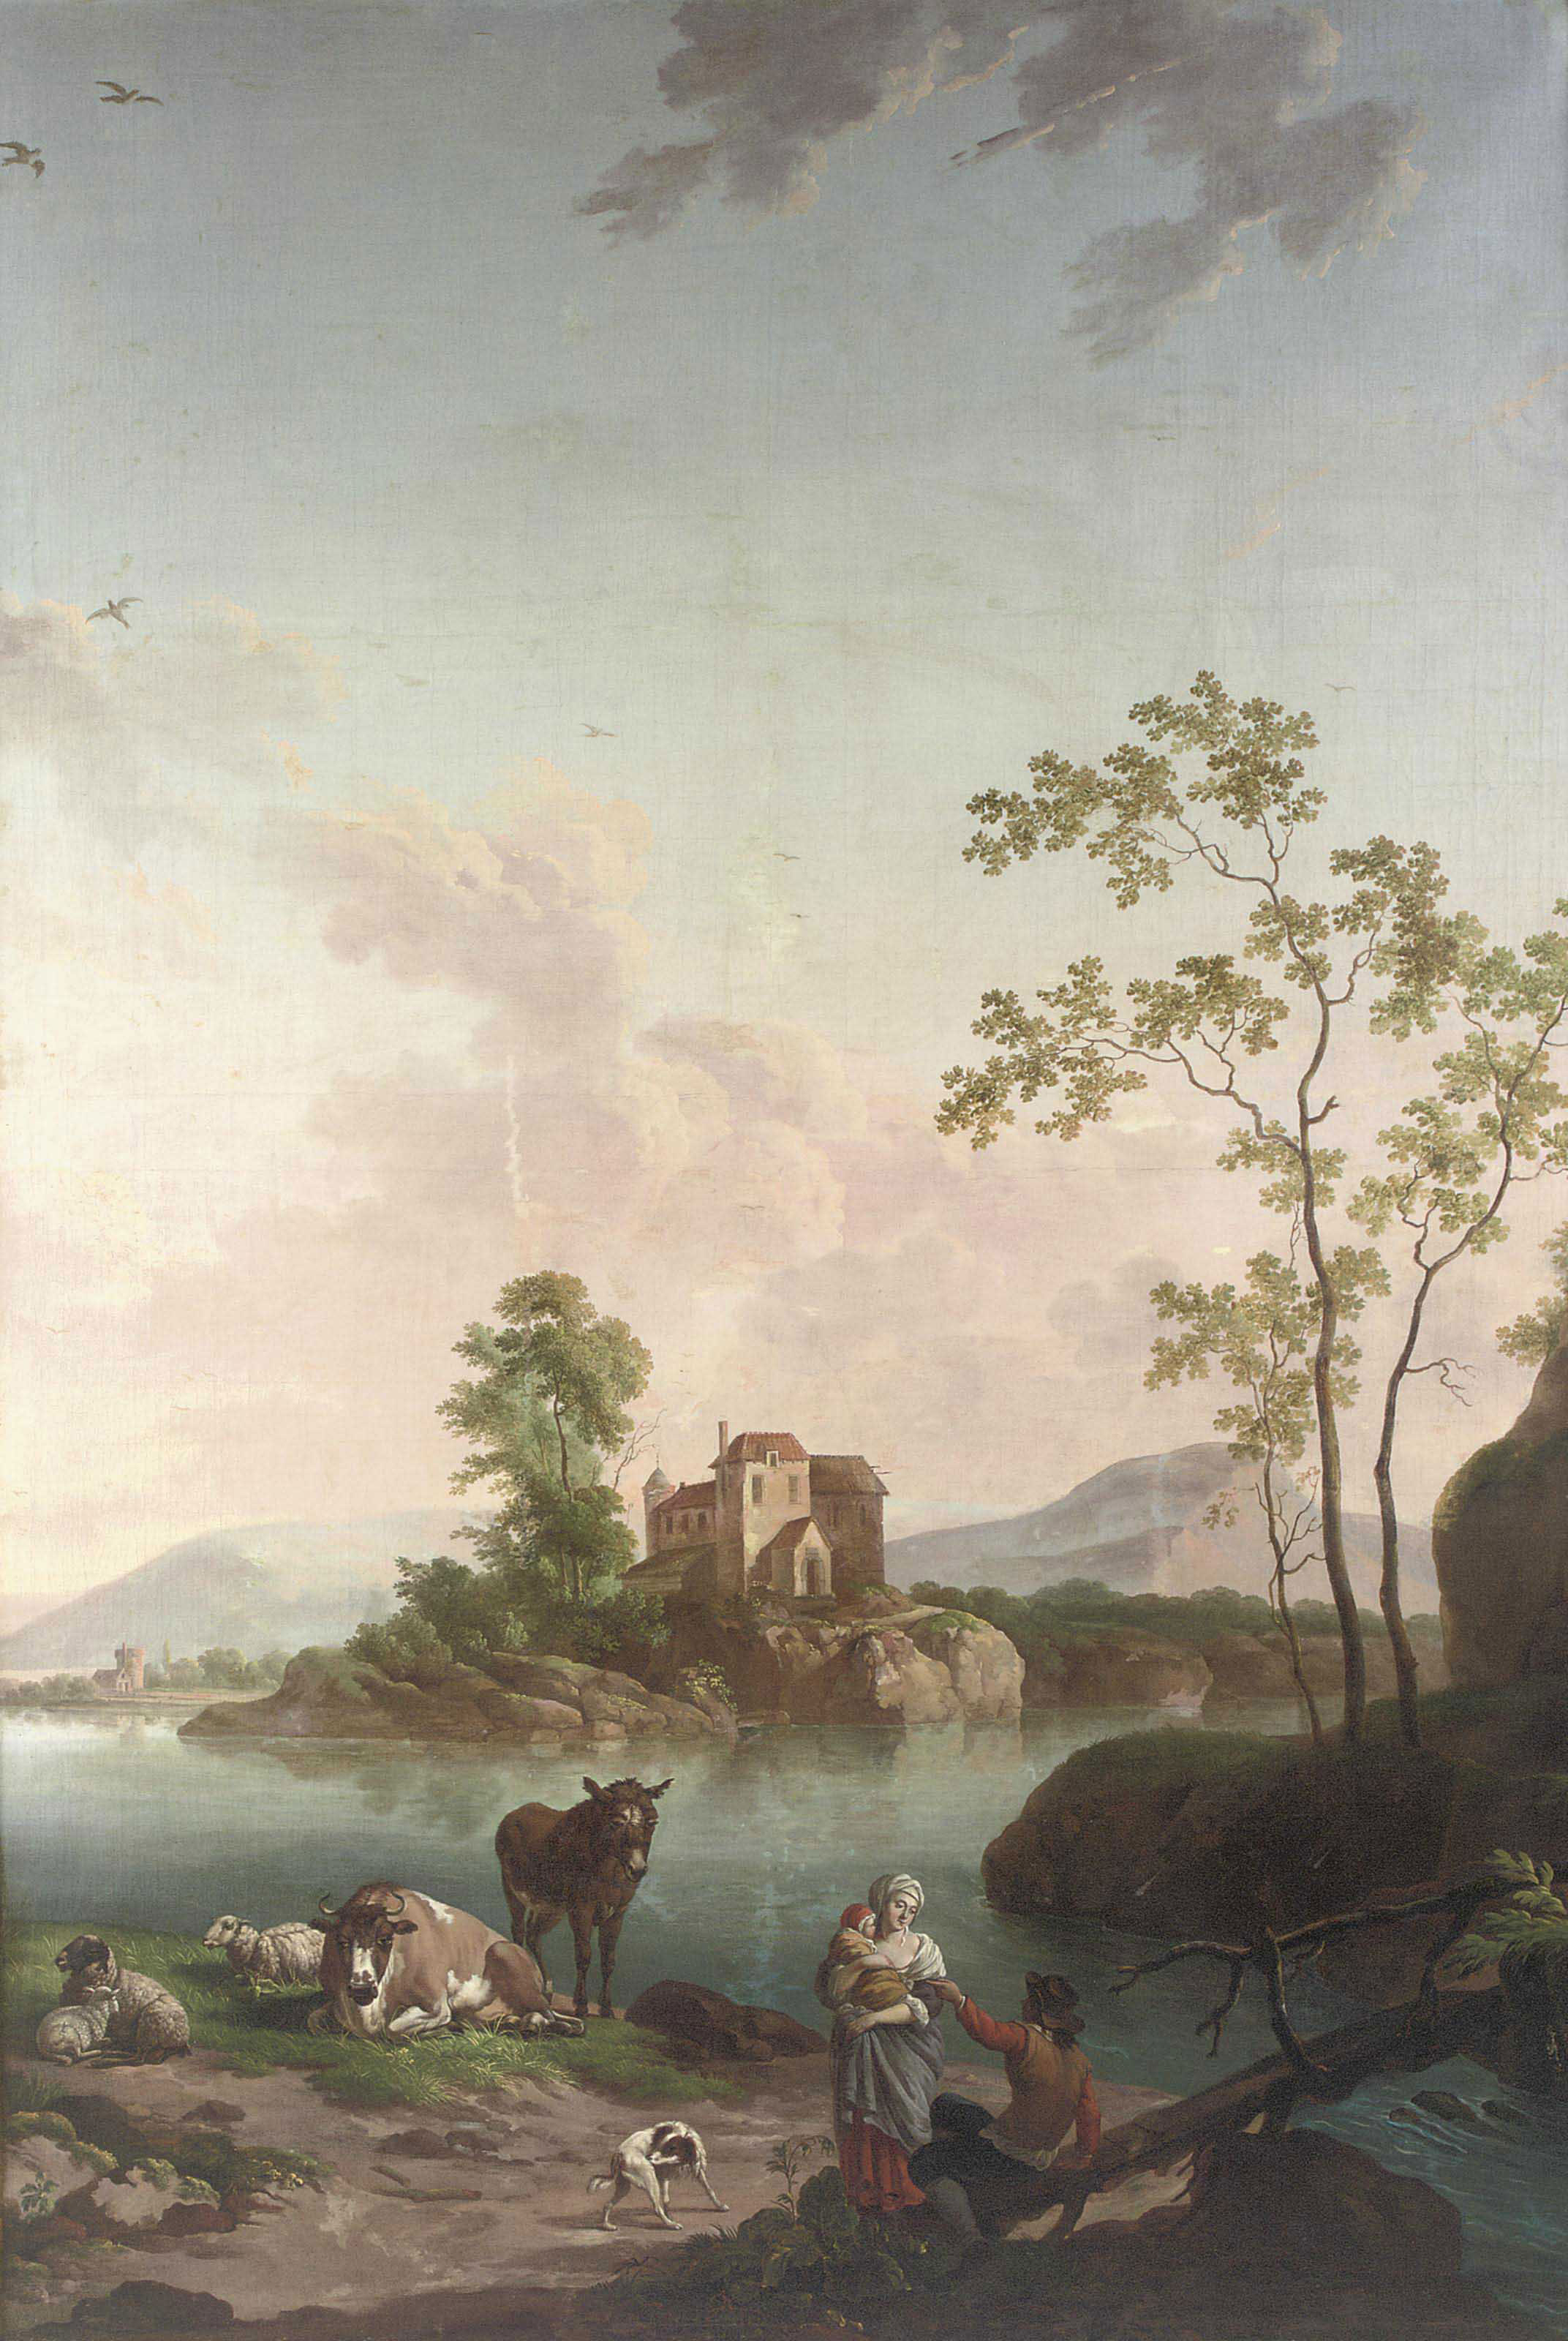 A river landscape with figures and cattle near a bridge, a house on the distant river bank